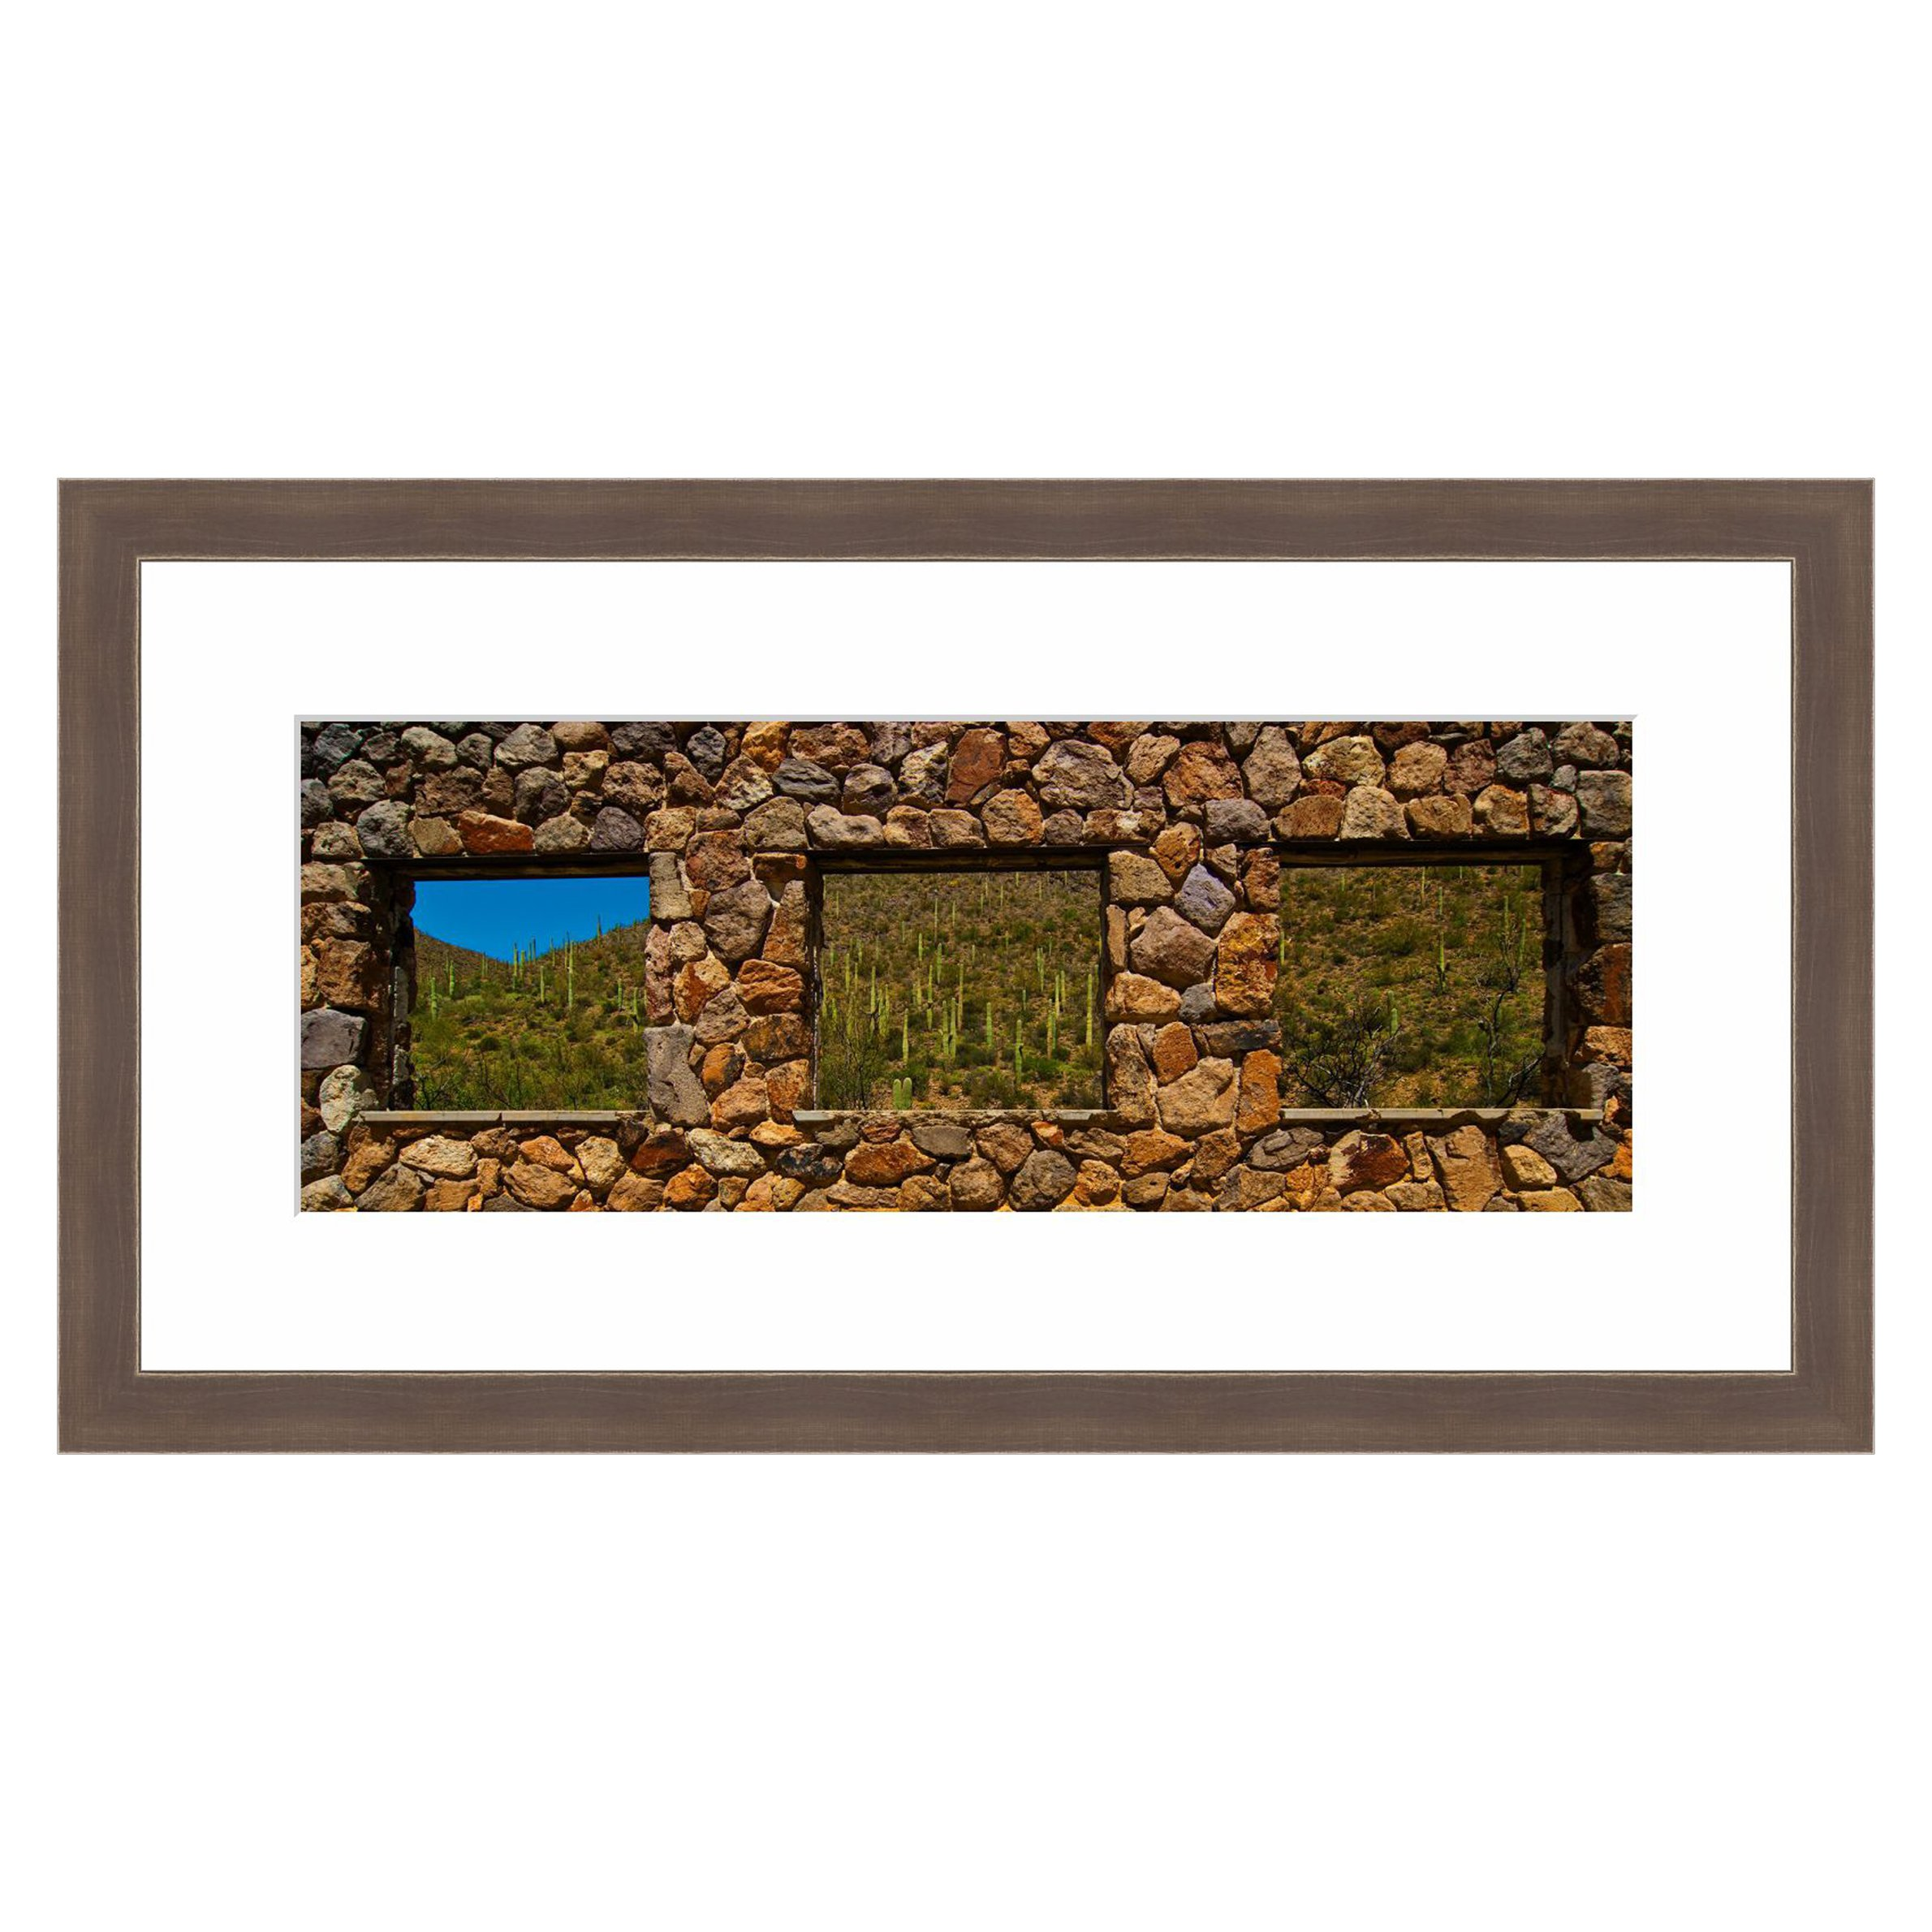 eFrame Fine Art | Stone Window Yetwin Trail Tuscon Mountain Park Arizona by Howard Paley 11'' x 30'' Framed and Unframed Wall Art for Wall Decor or Home Decor (Black, Brown, White Frame or No Frame)